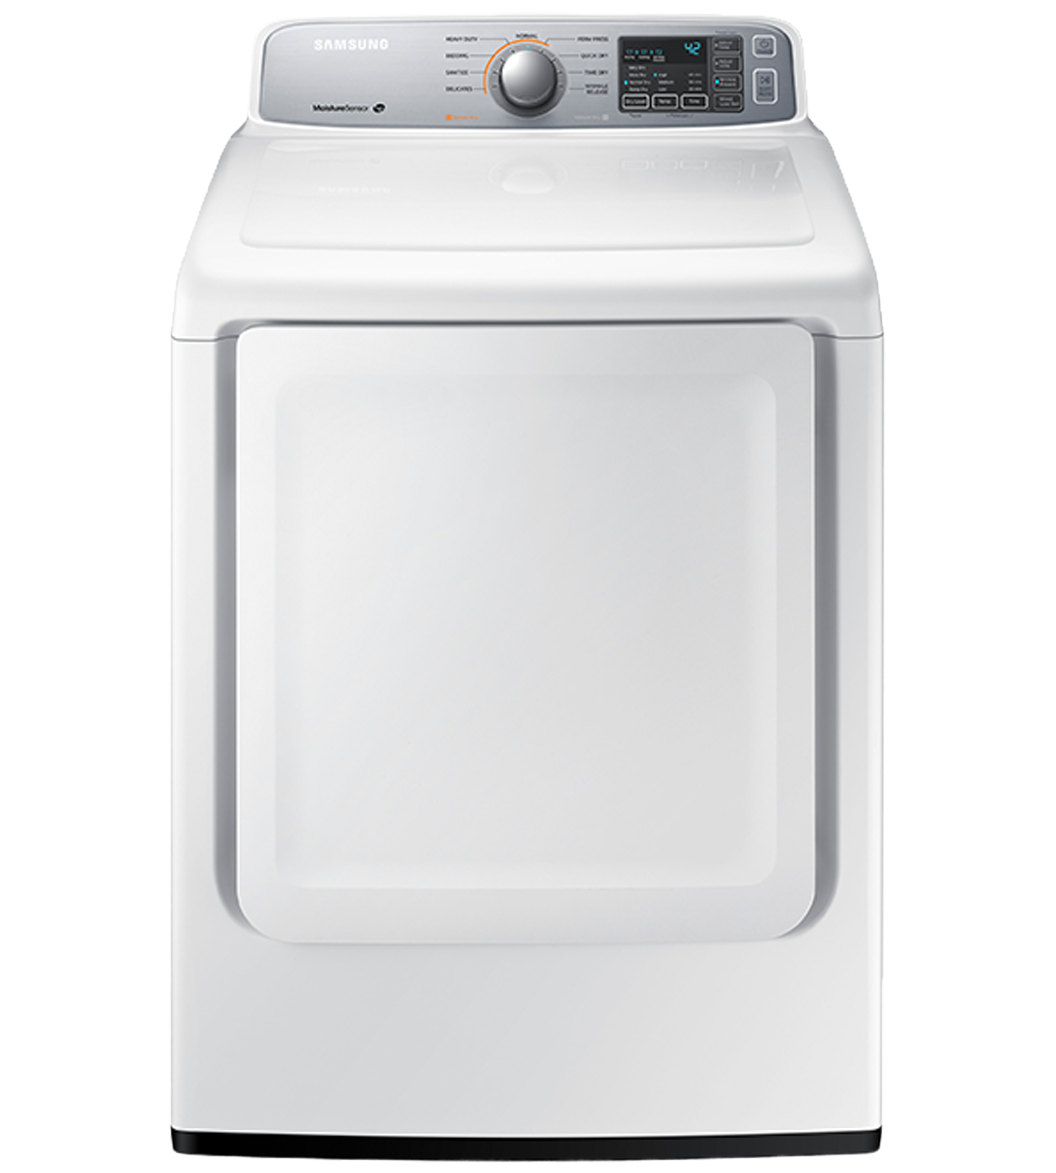 Samsung Dryer 27 White DV45H7000EW